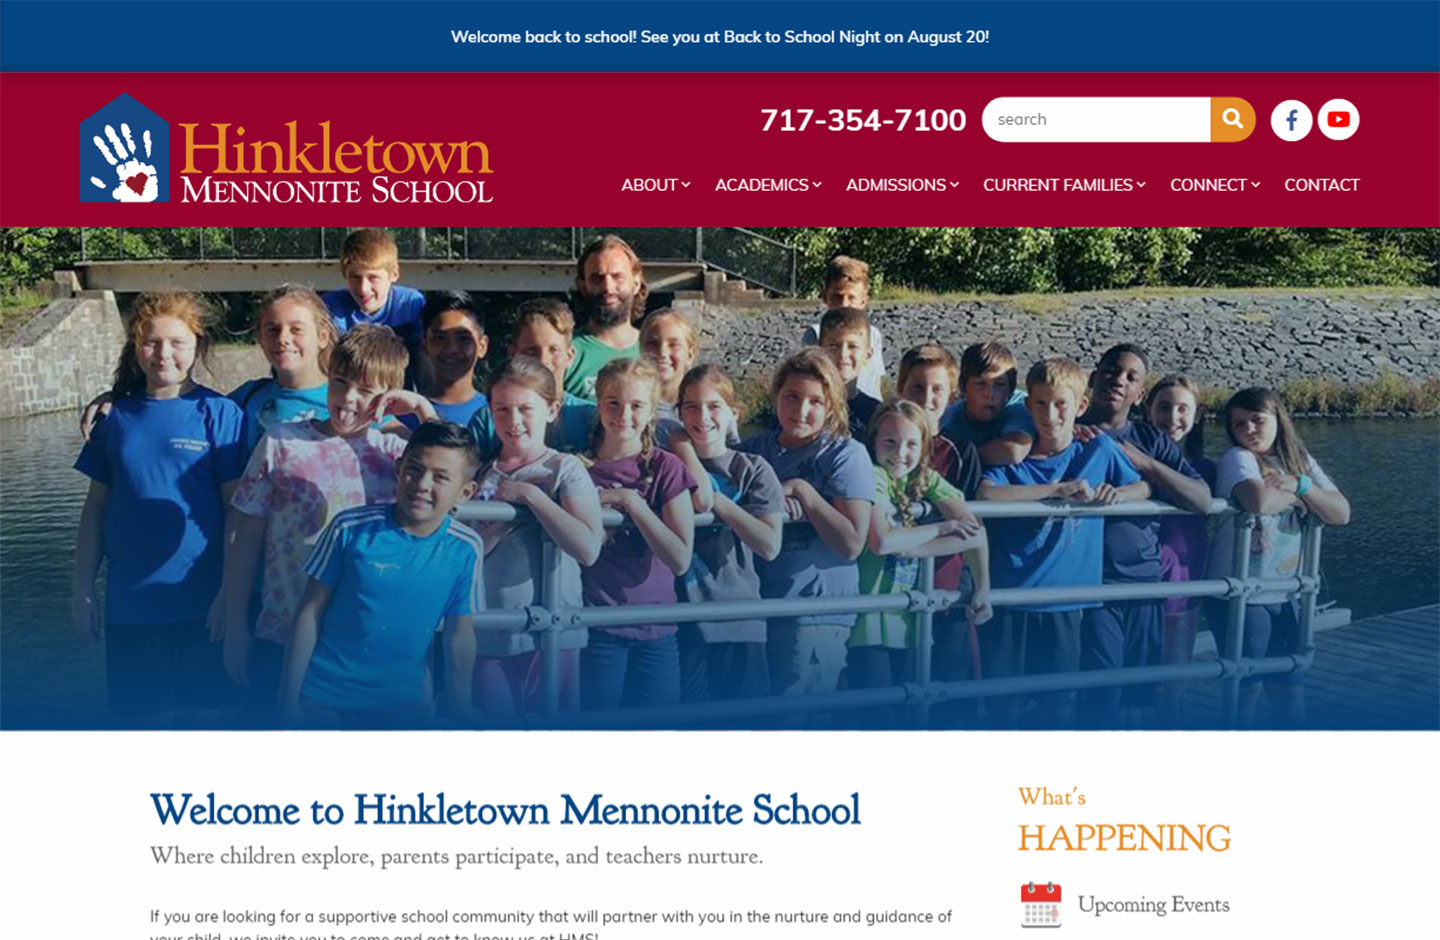 Hinkletown Mennonite School